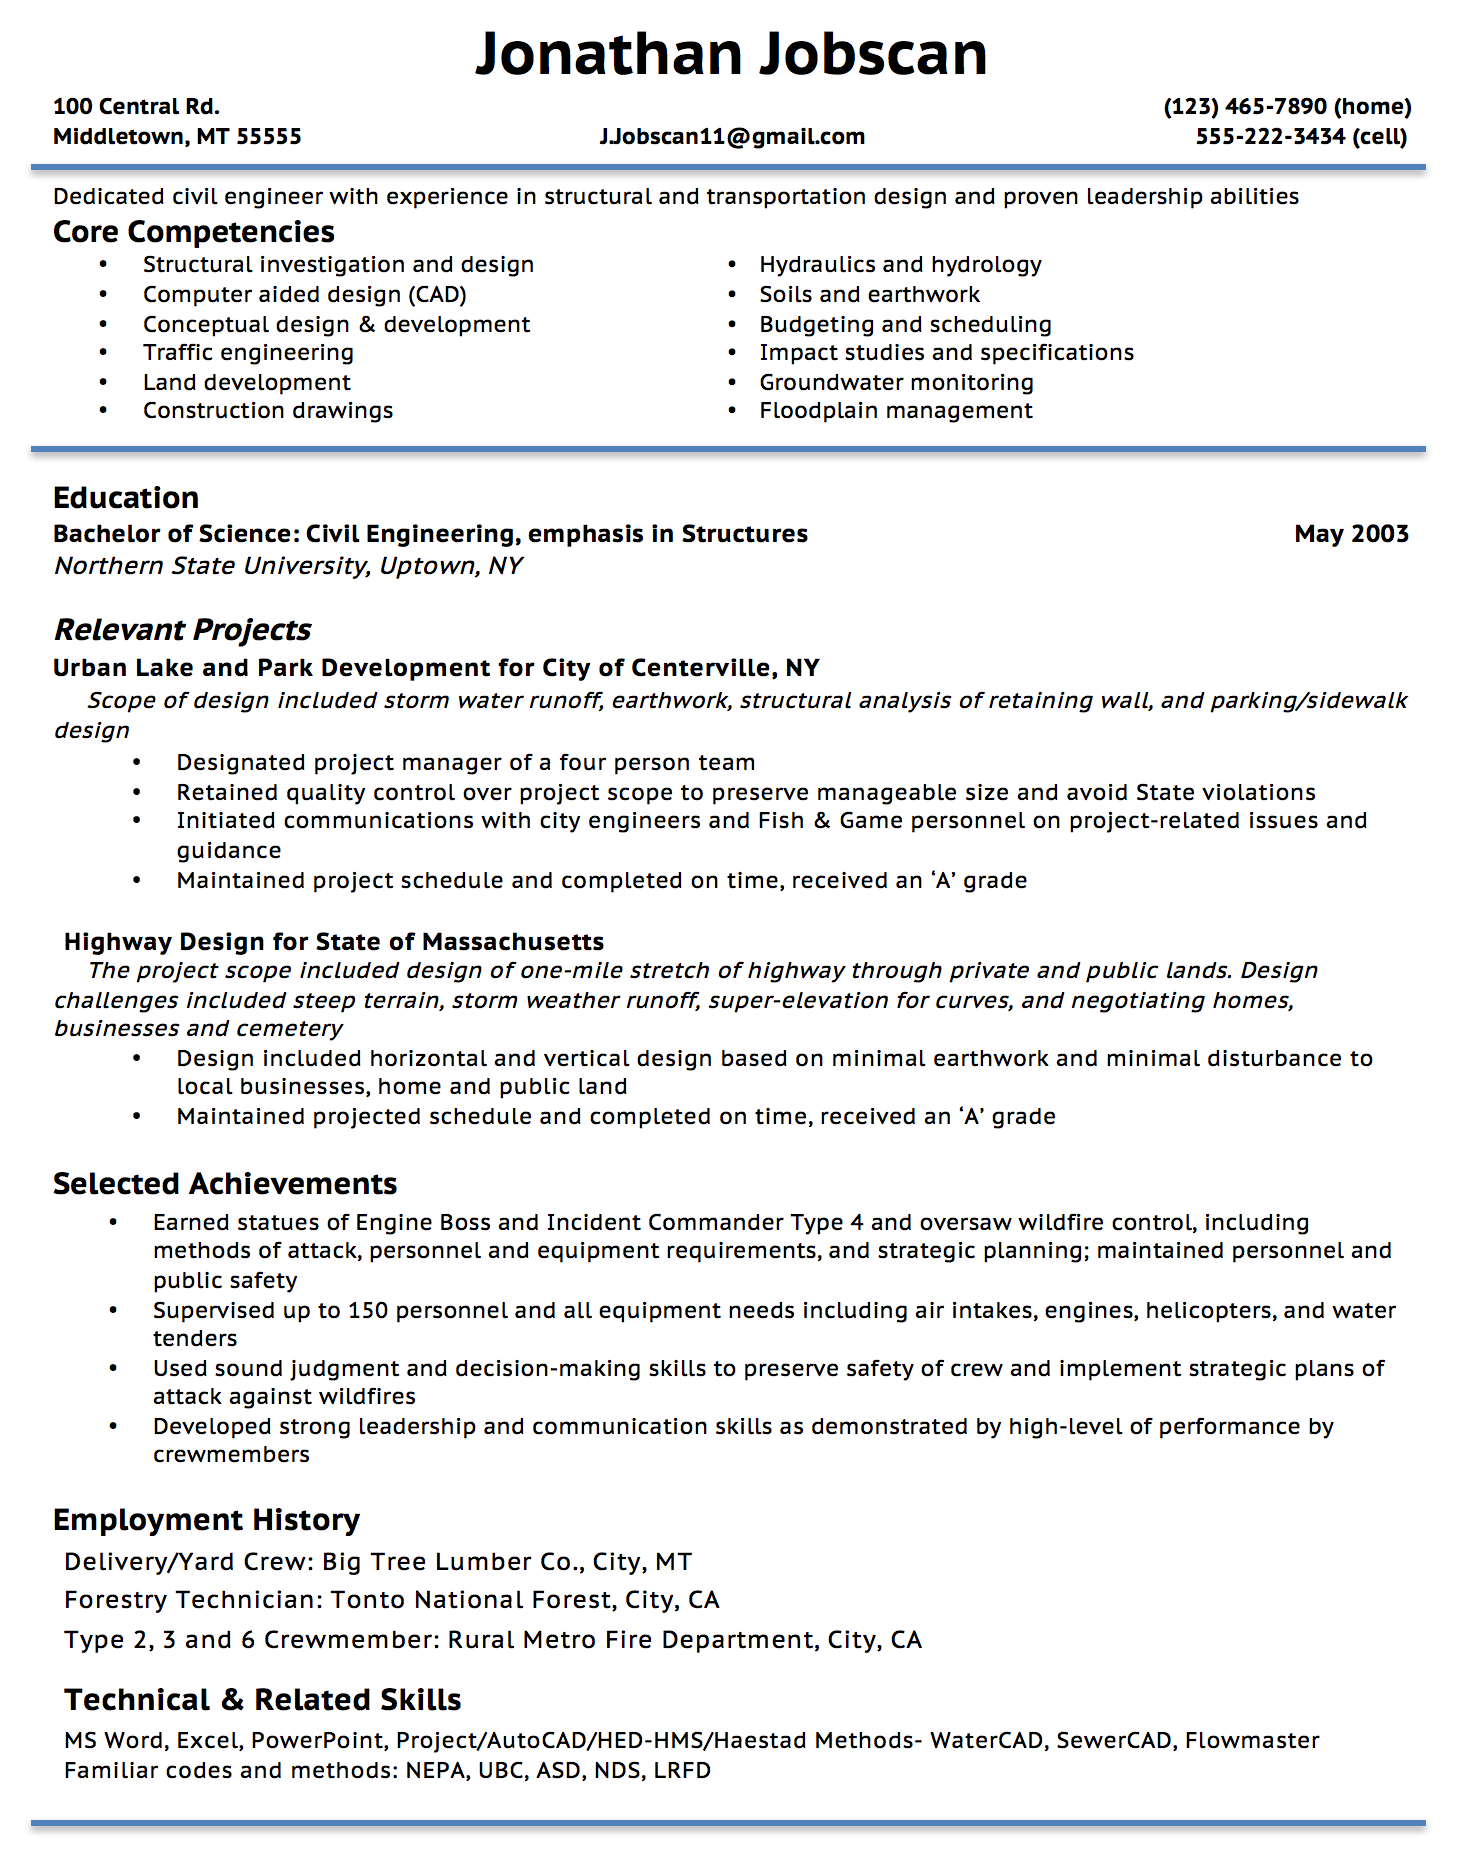 Opposenewapstandardsus  Nice Resume Writing Guide  Jobscan With Entrancing Example Of A Functional Resume Format With Beauteous Data Entry Resume Objective Also How To Build A Perfect Resume In Addition Objective Samples For Resumes And Easy Free Resume Builder As Well As Best Designed Resumes Additionally Resumes By Design From Jobscanco With Opposenewapstandardsus  Entrancing Resume Writing Guide  Jobscan With Beauteous Example Of A Functional Resume Format And Nice Data Entry Resume Objective Also How To Build A Perfect Resume In Addition Objective Samples For Resumes From Jobscanco